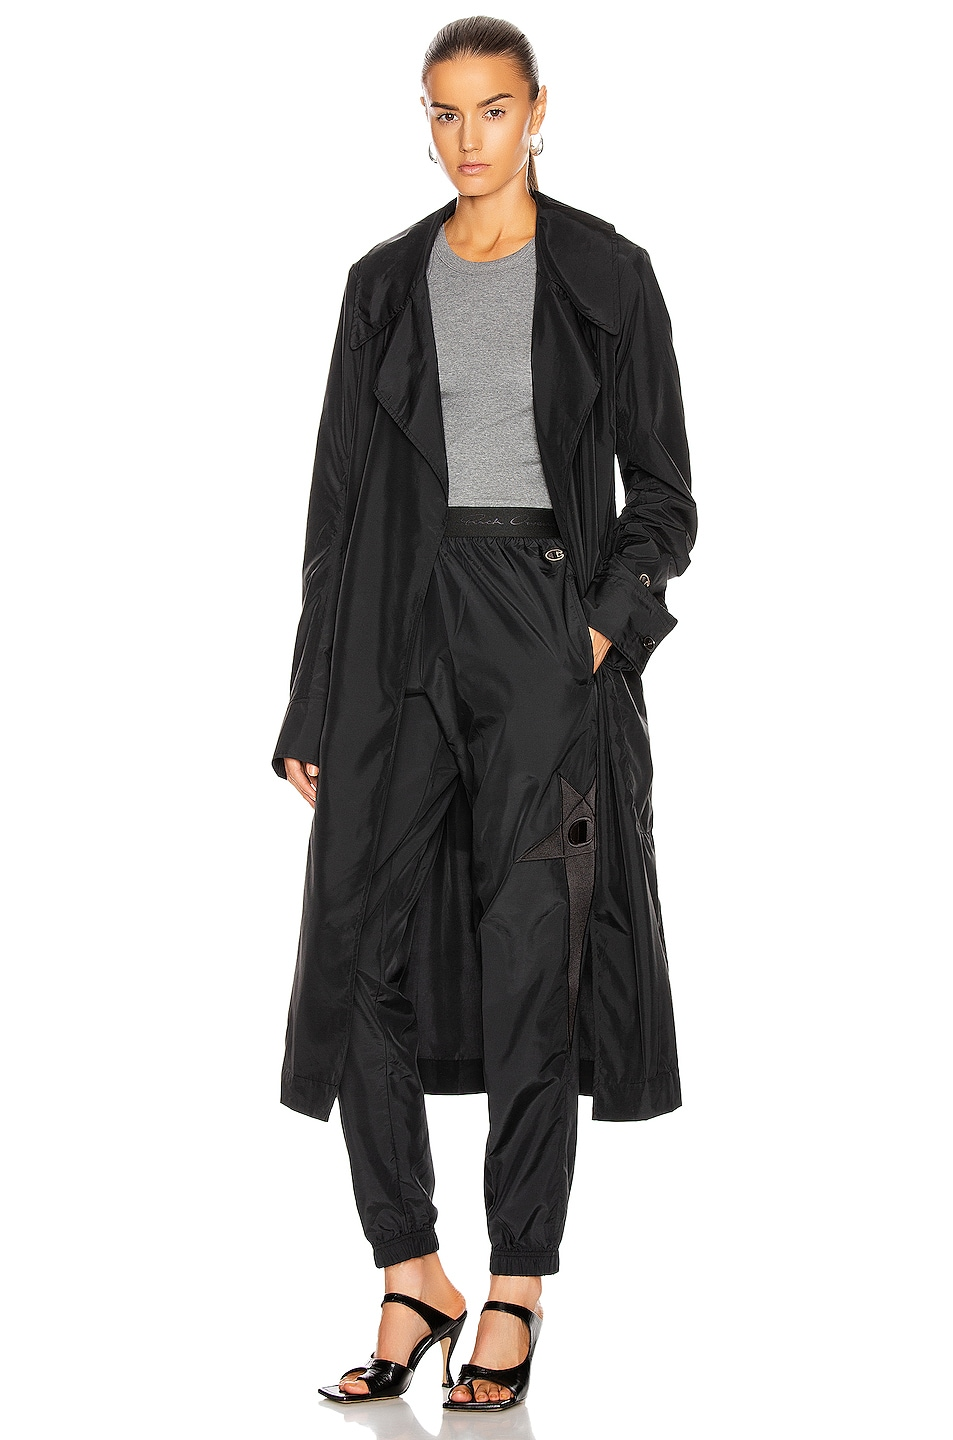 Image 1 of Rick Owens x Champion Trench Coat in Black